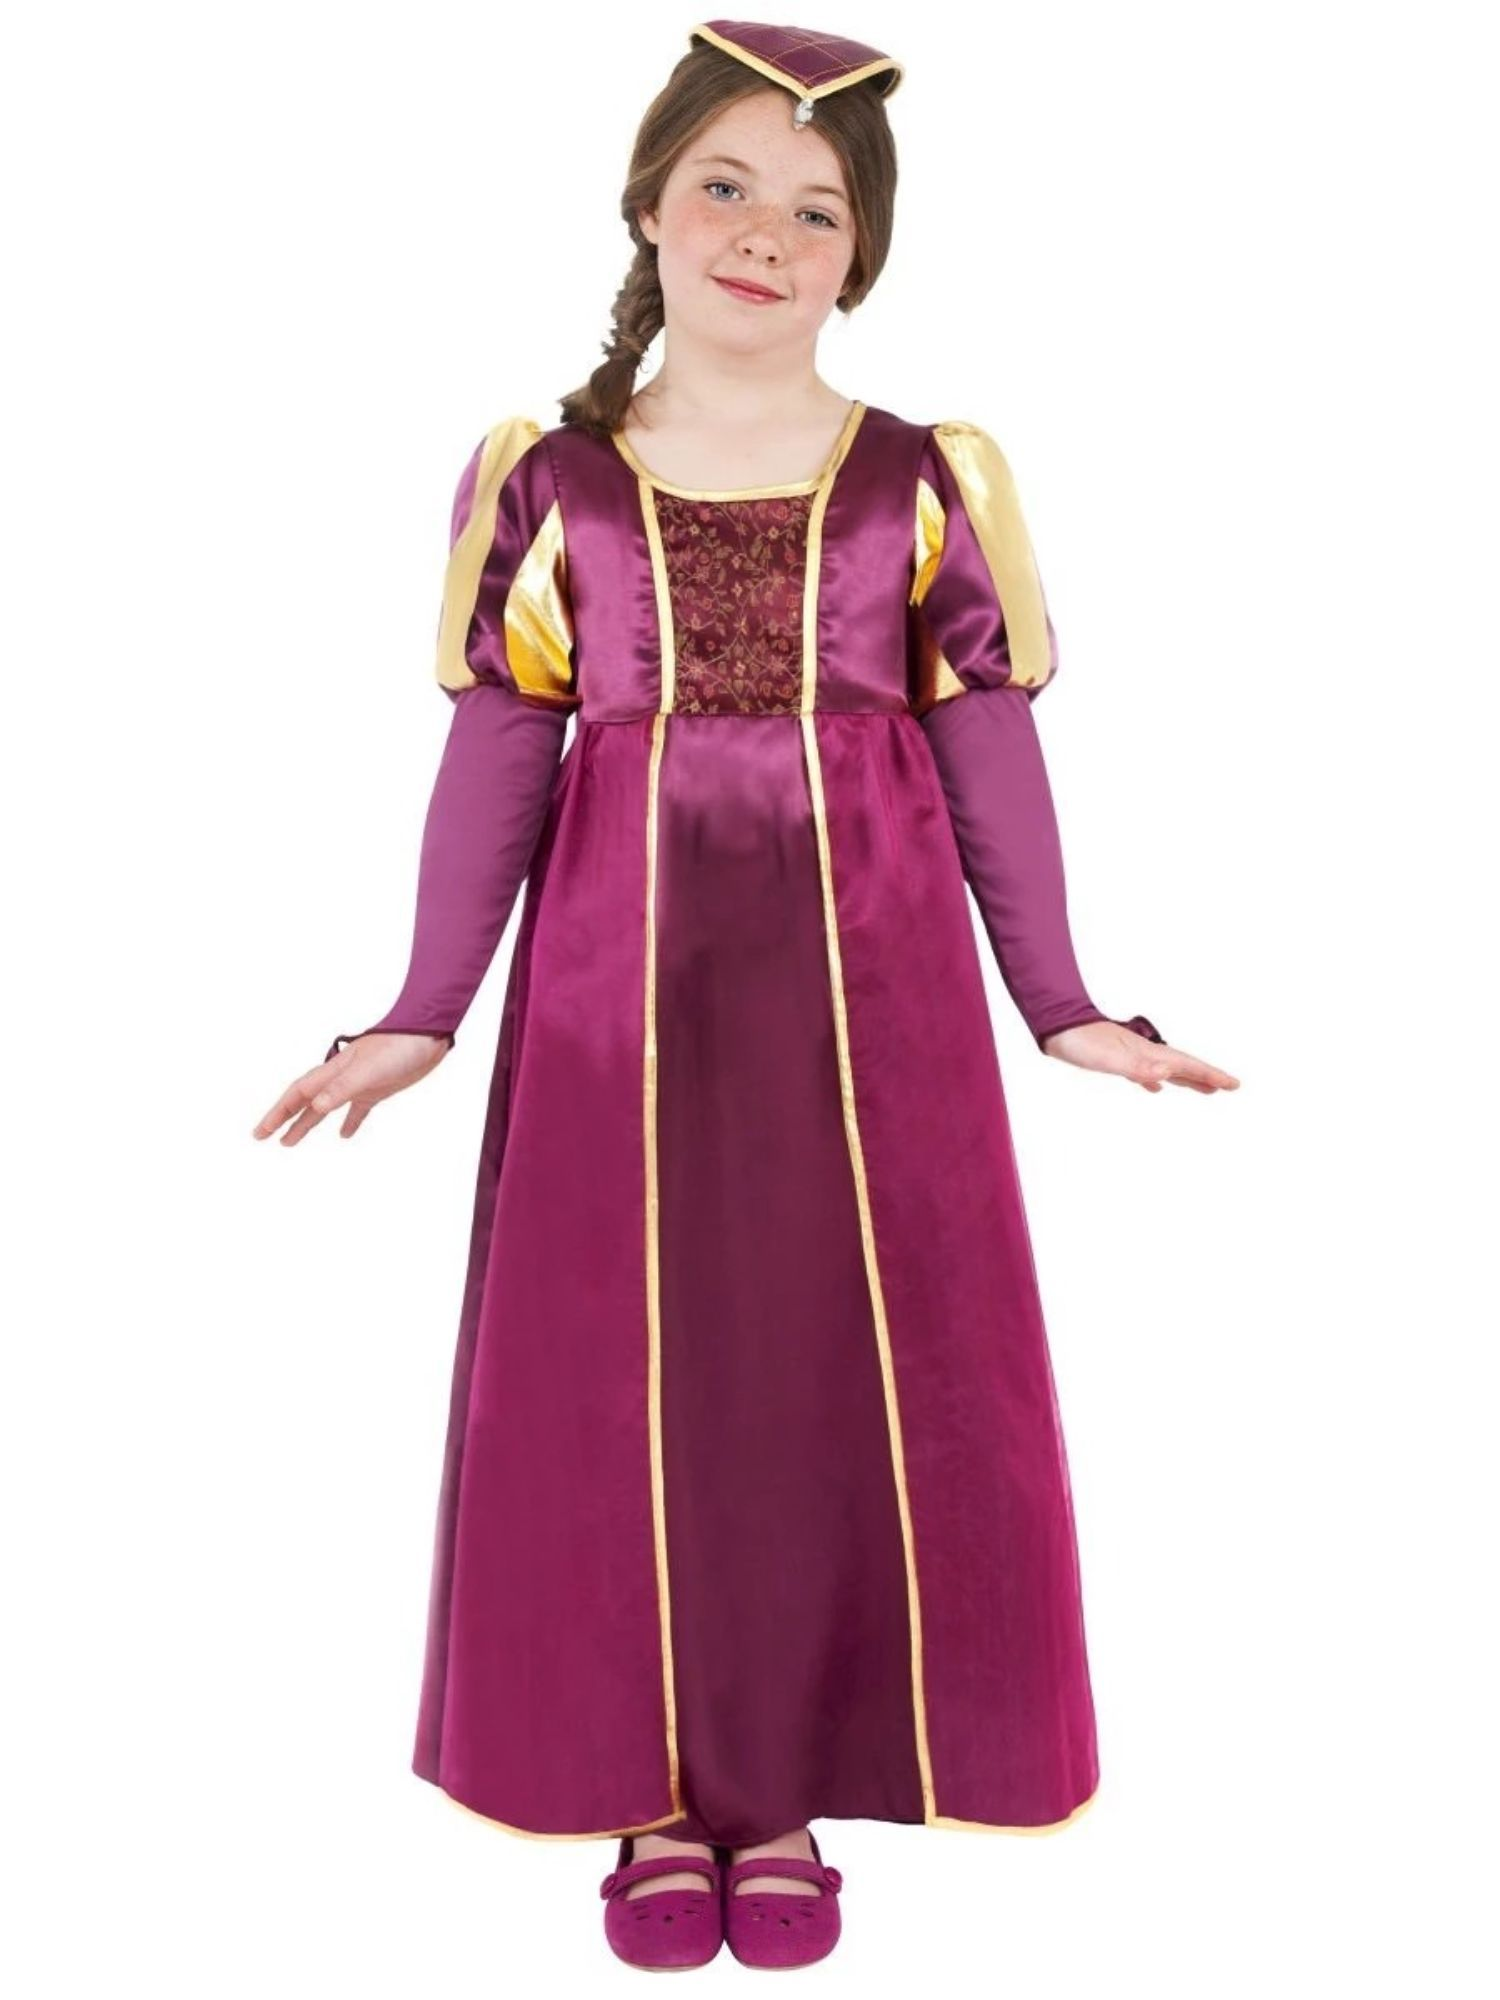 Medieval Regal Princess Halloween Costume Tudor Kids Book Day Fancy Dress Outfit